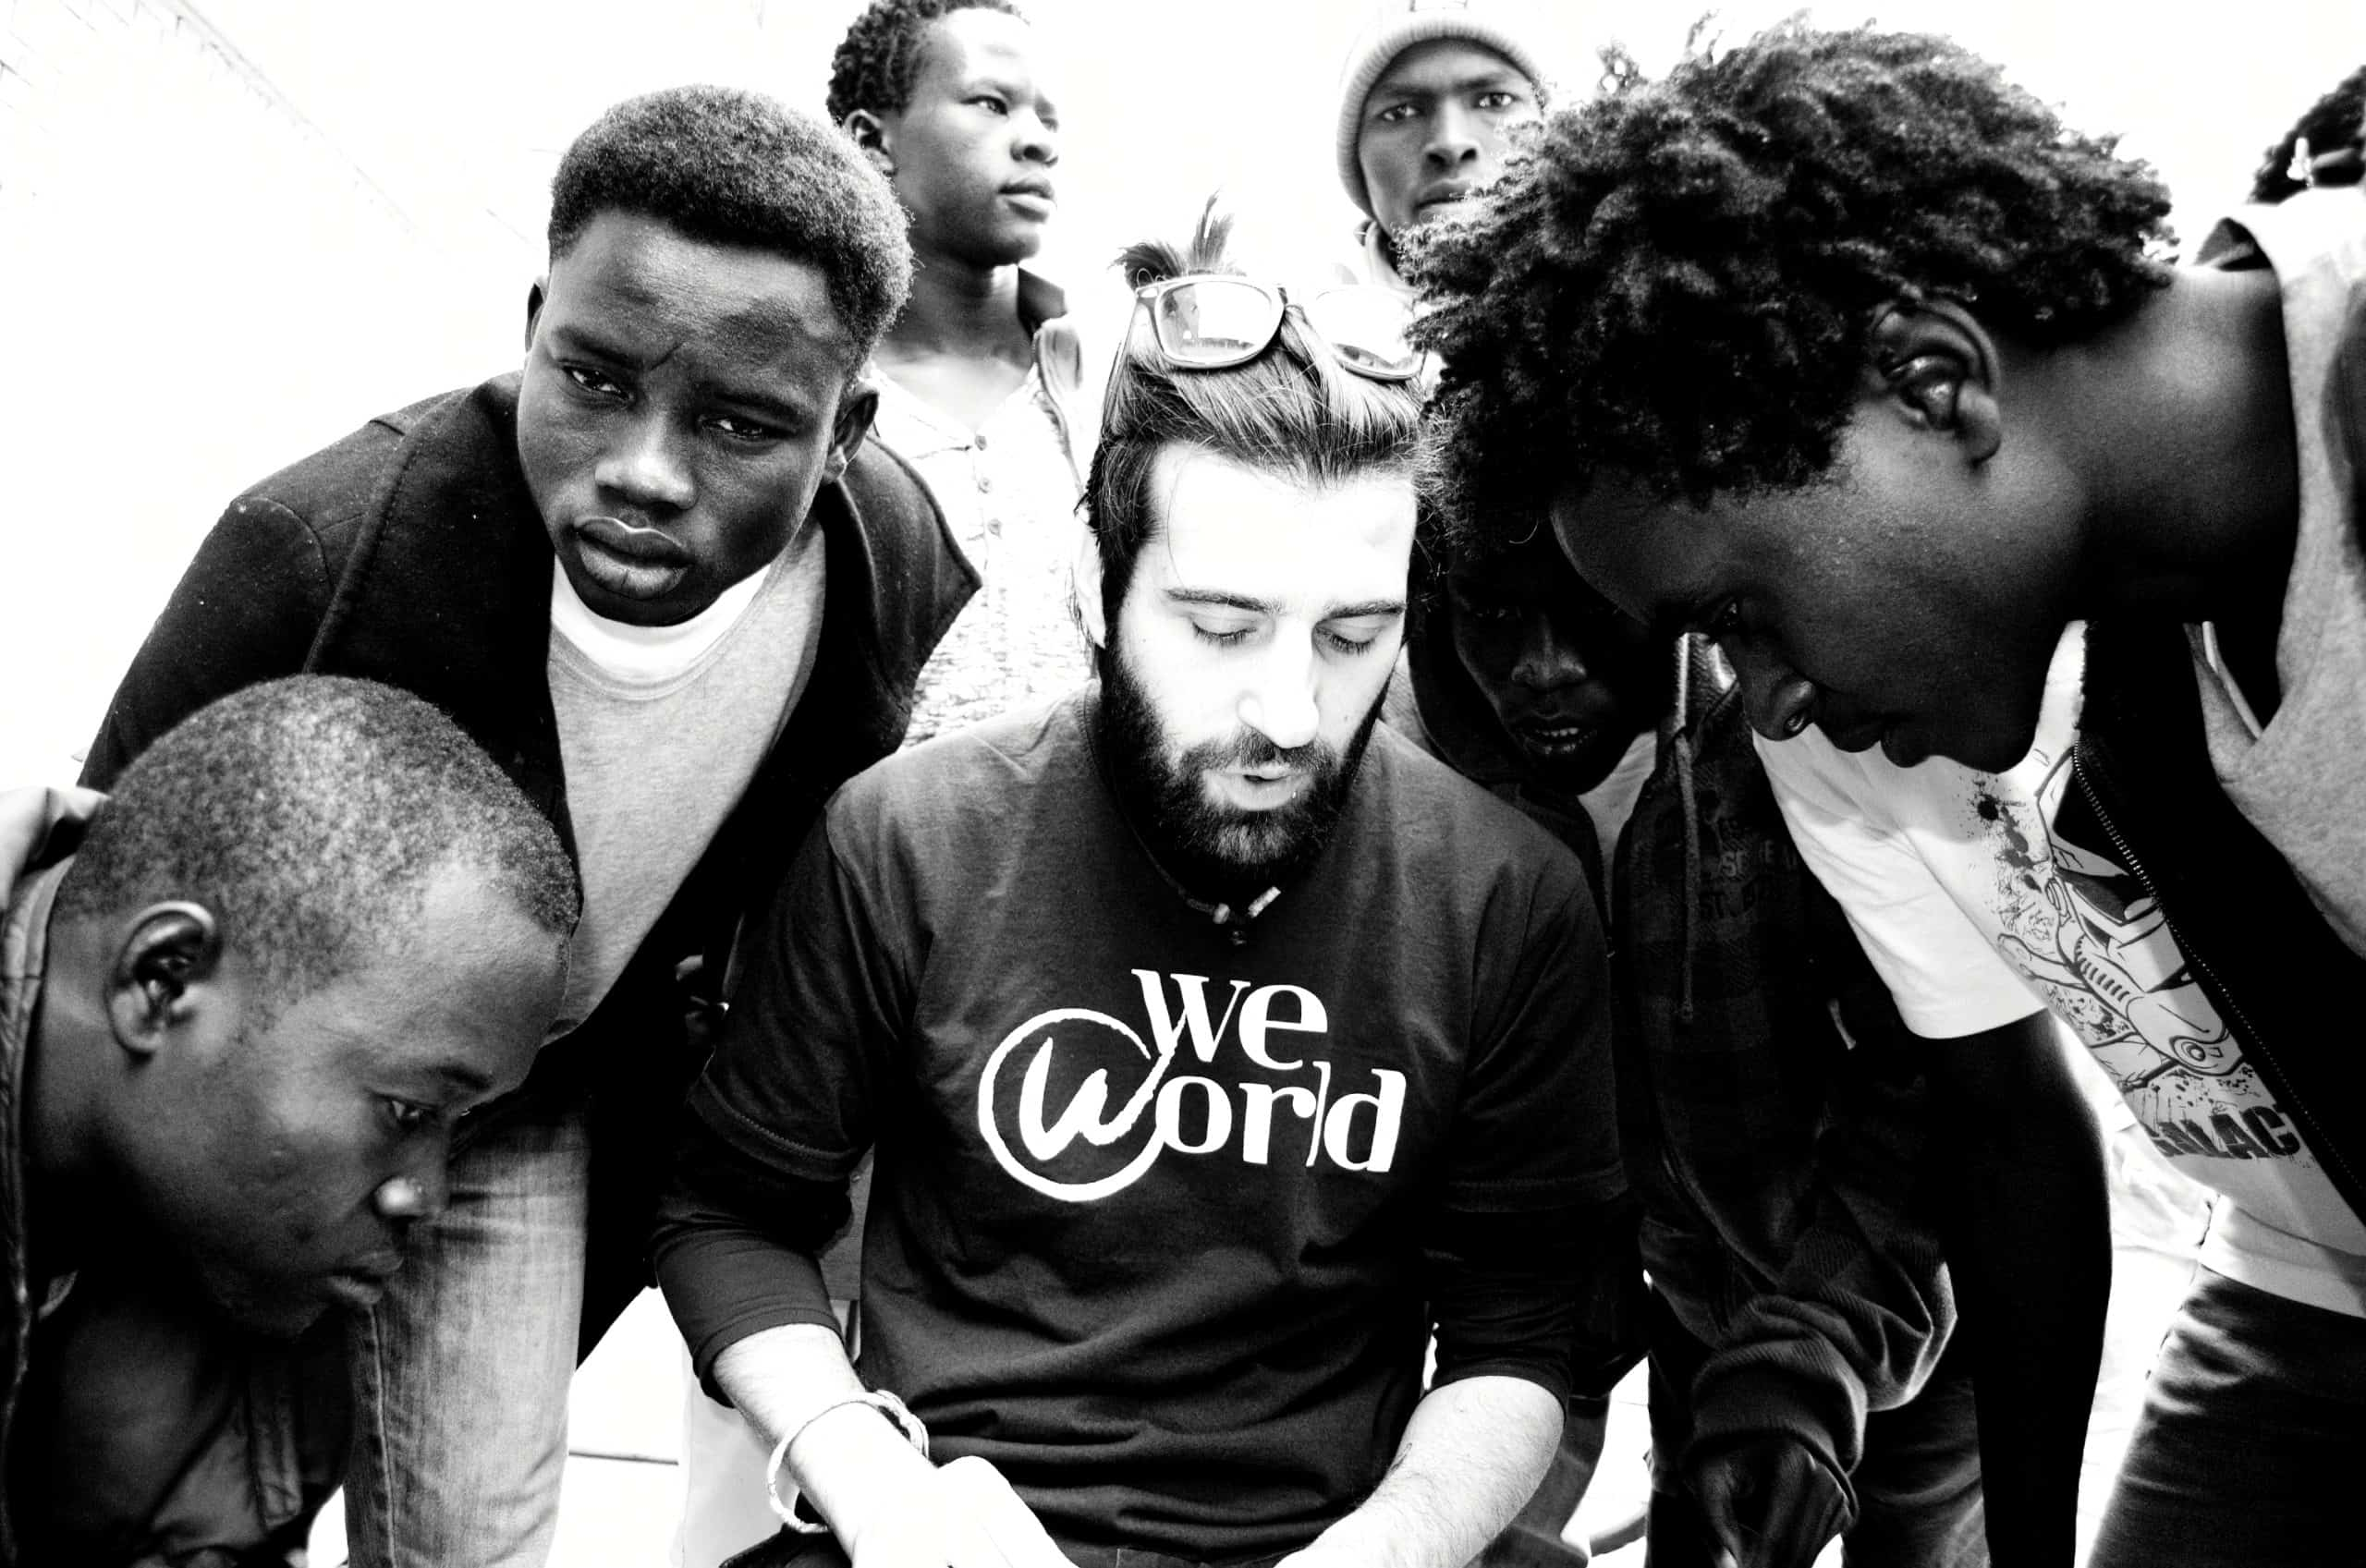 A white man with a beard sits. A group of young black men stand around him.